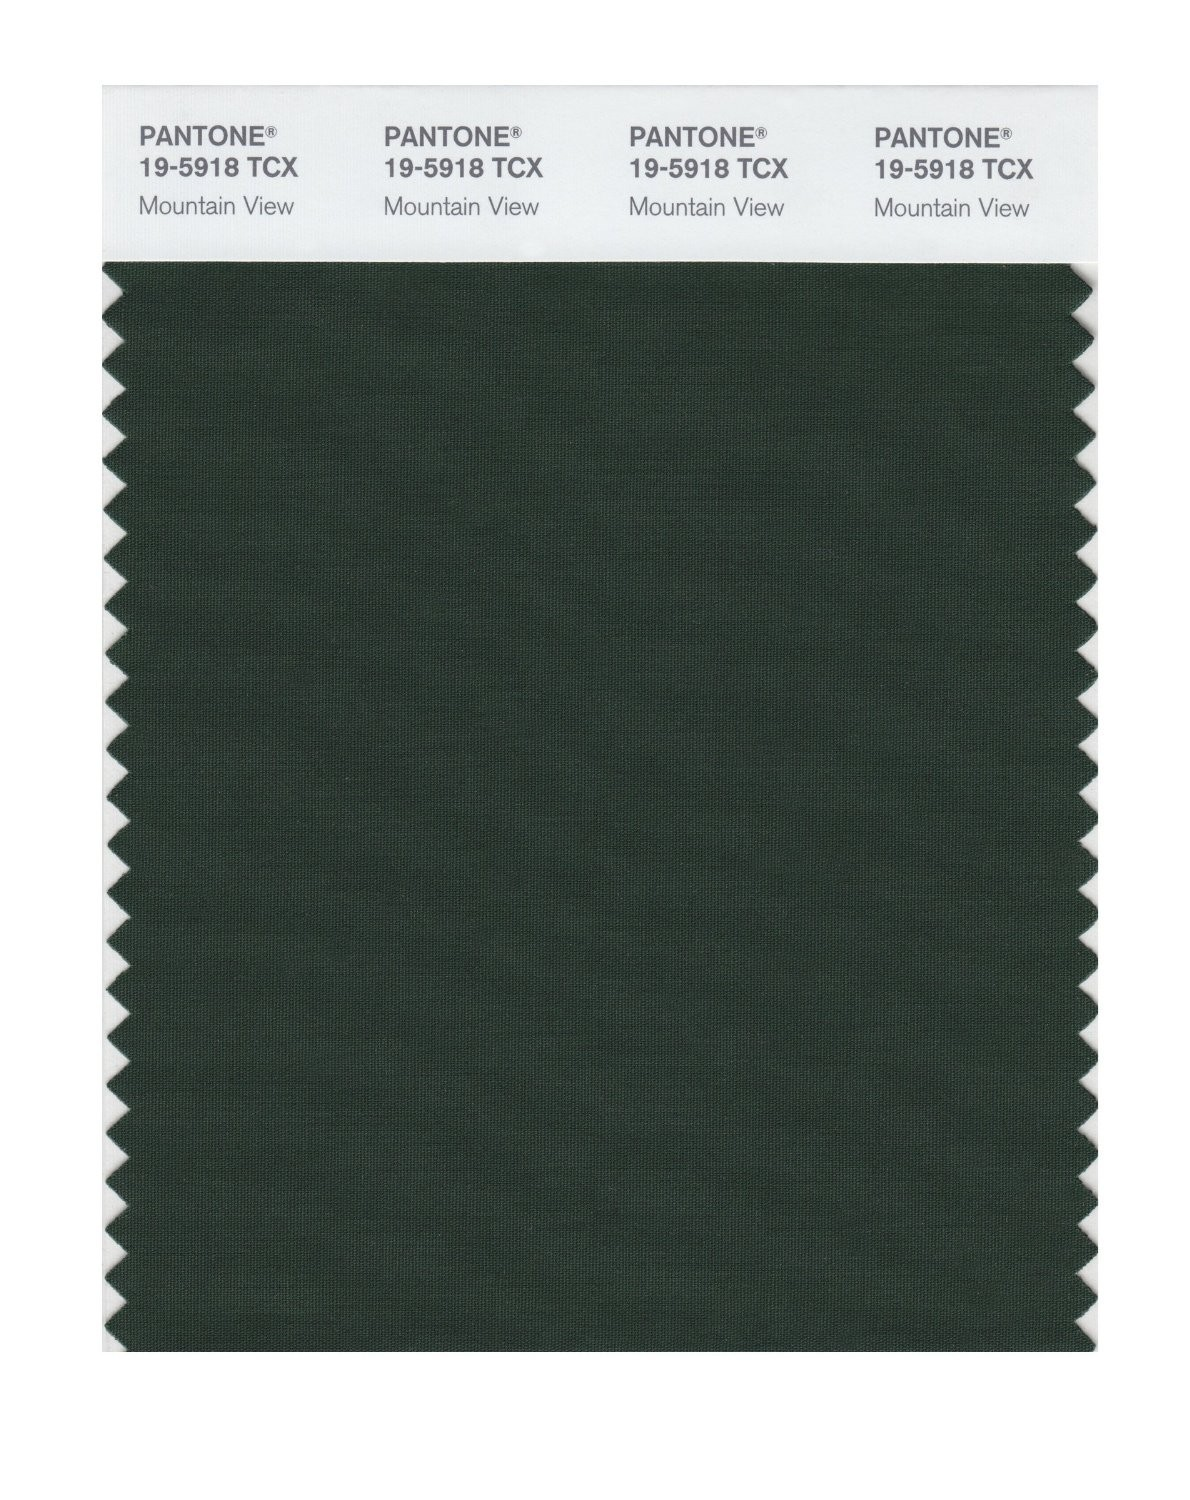 Pantone 19-5918 TCX Swatch Card Mountain View